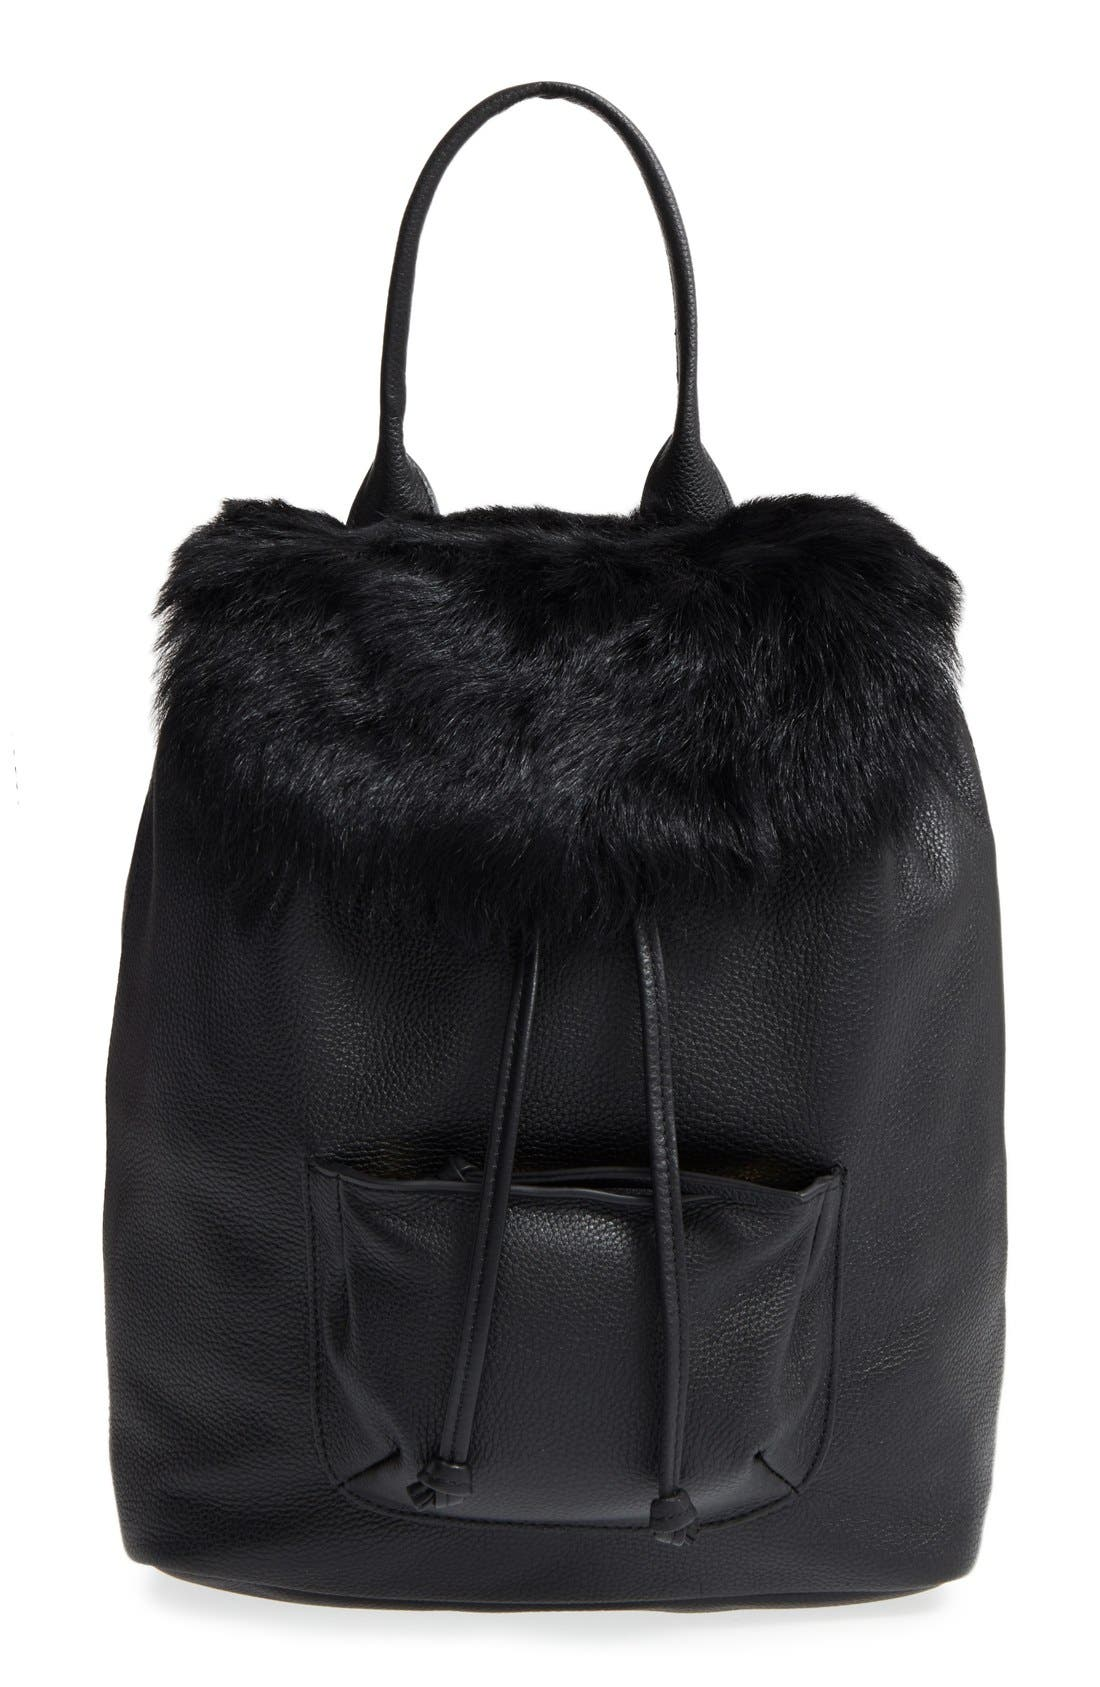 ELIZABETH AND JAMES, 'Langley' Leather & Genuine Sheep Fur Backpack, Main thumbnail 1, color, 001